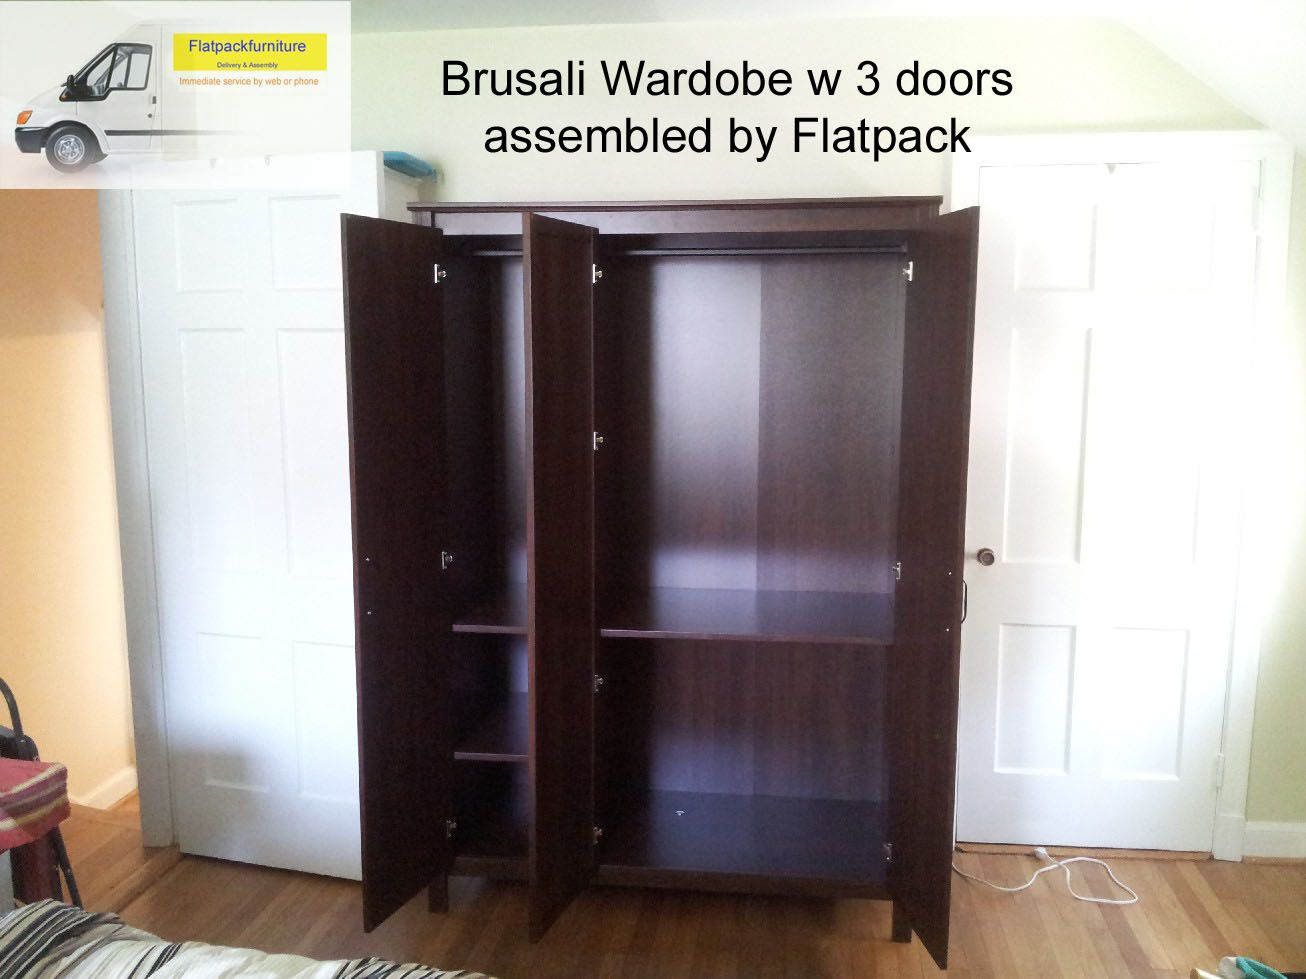 Brusali Wardrobe Ikea Brusali Wardrobe With 3 Doors Article Number 402 501 67 The